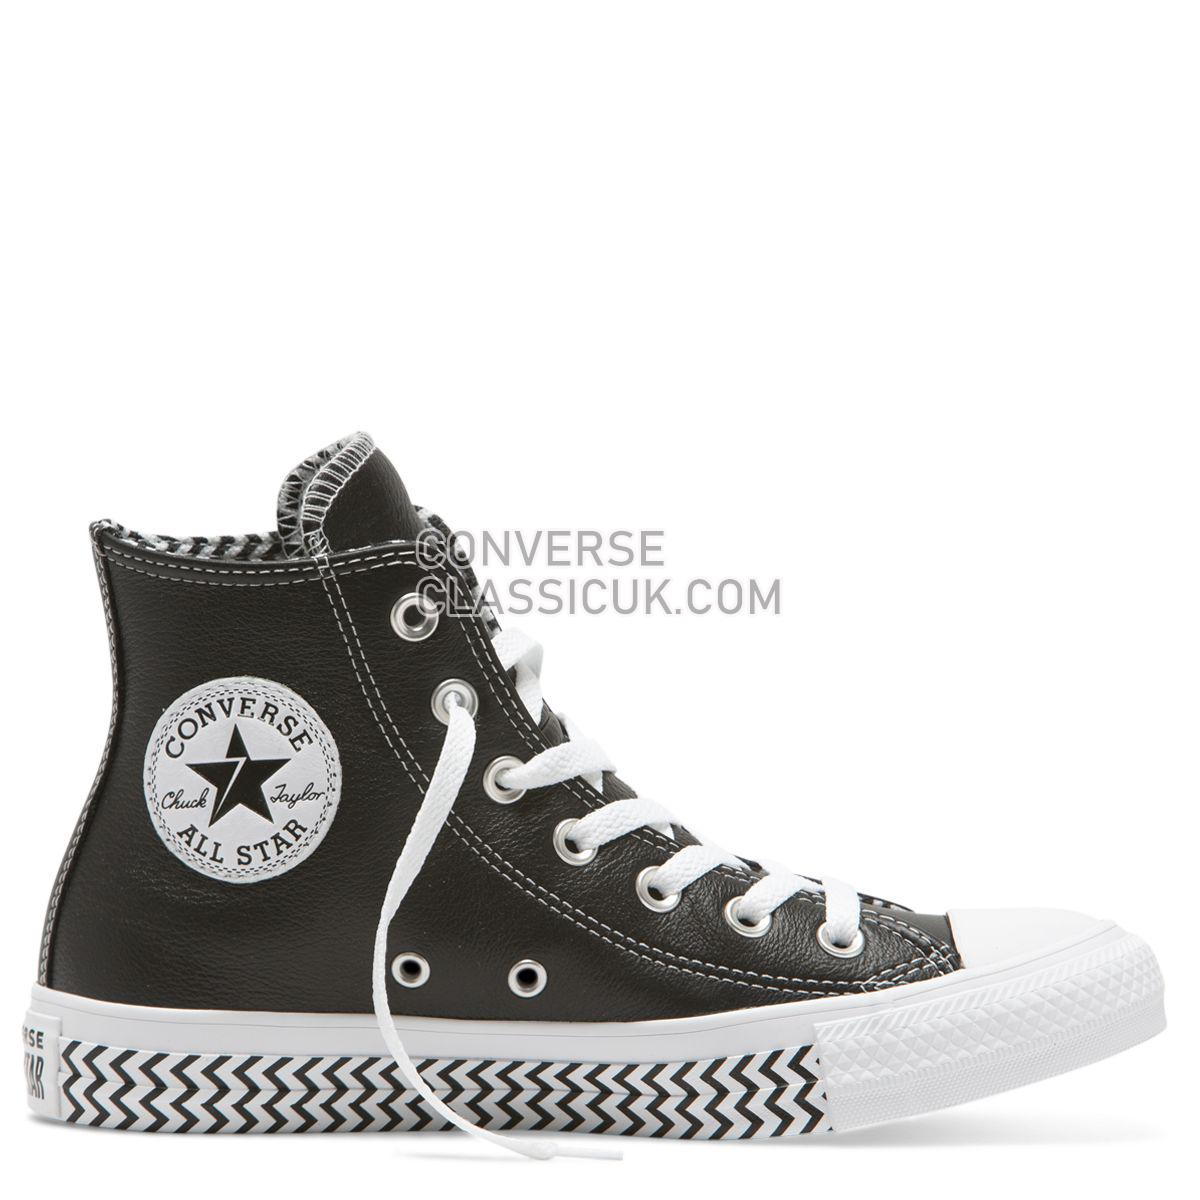 Converse Chuck Taylor All Star Mission-V High Top Black Womens 564943 Black/White/White Shoes